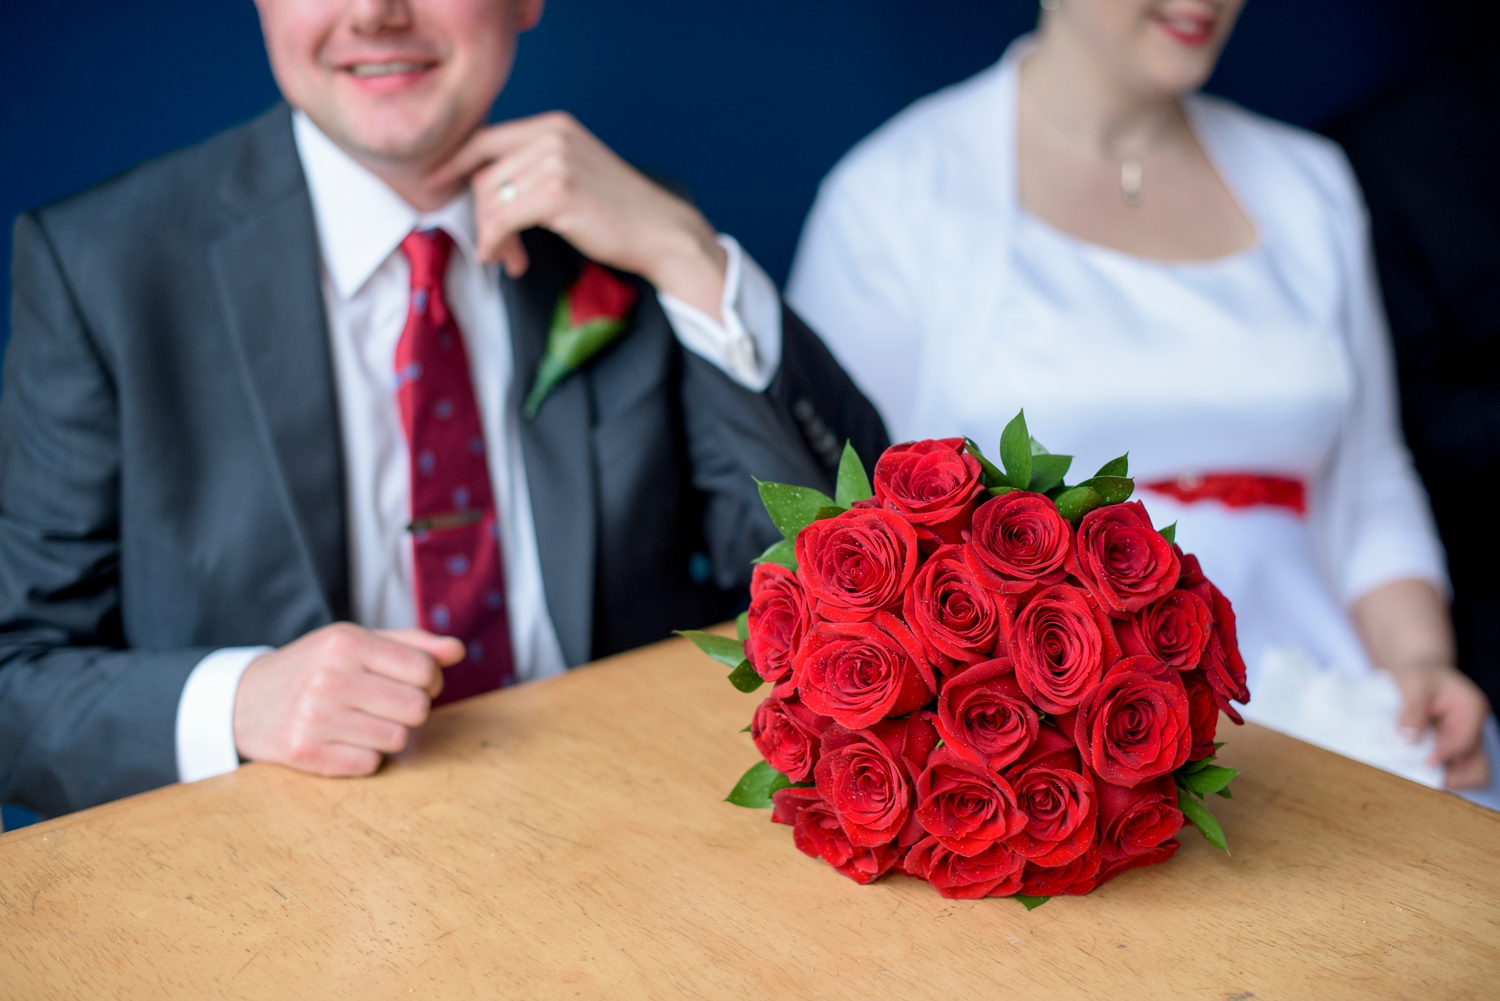 rose bouquet on the table in front of the bride and groom